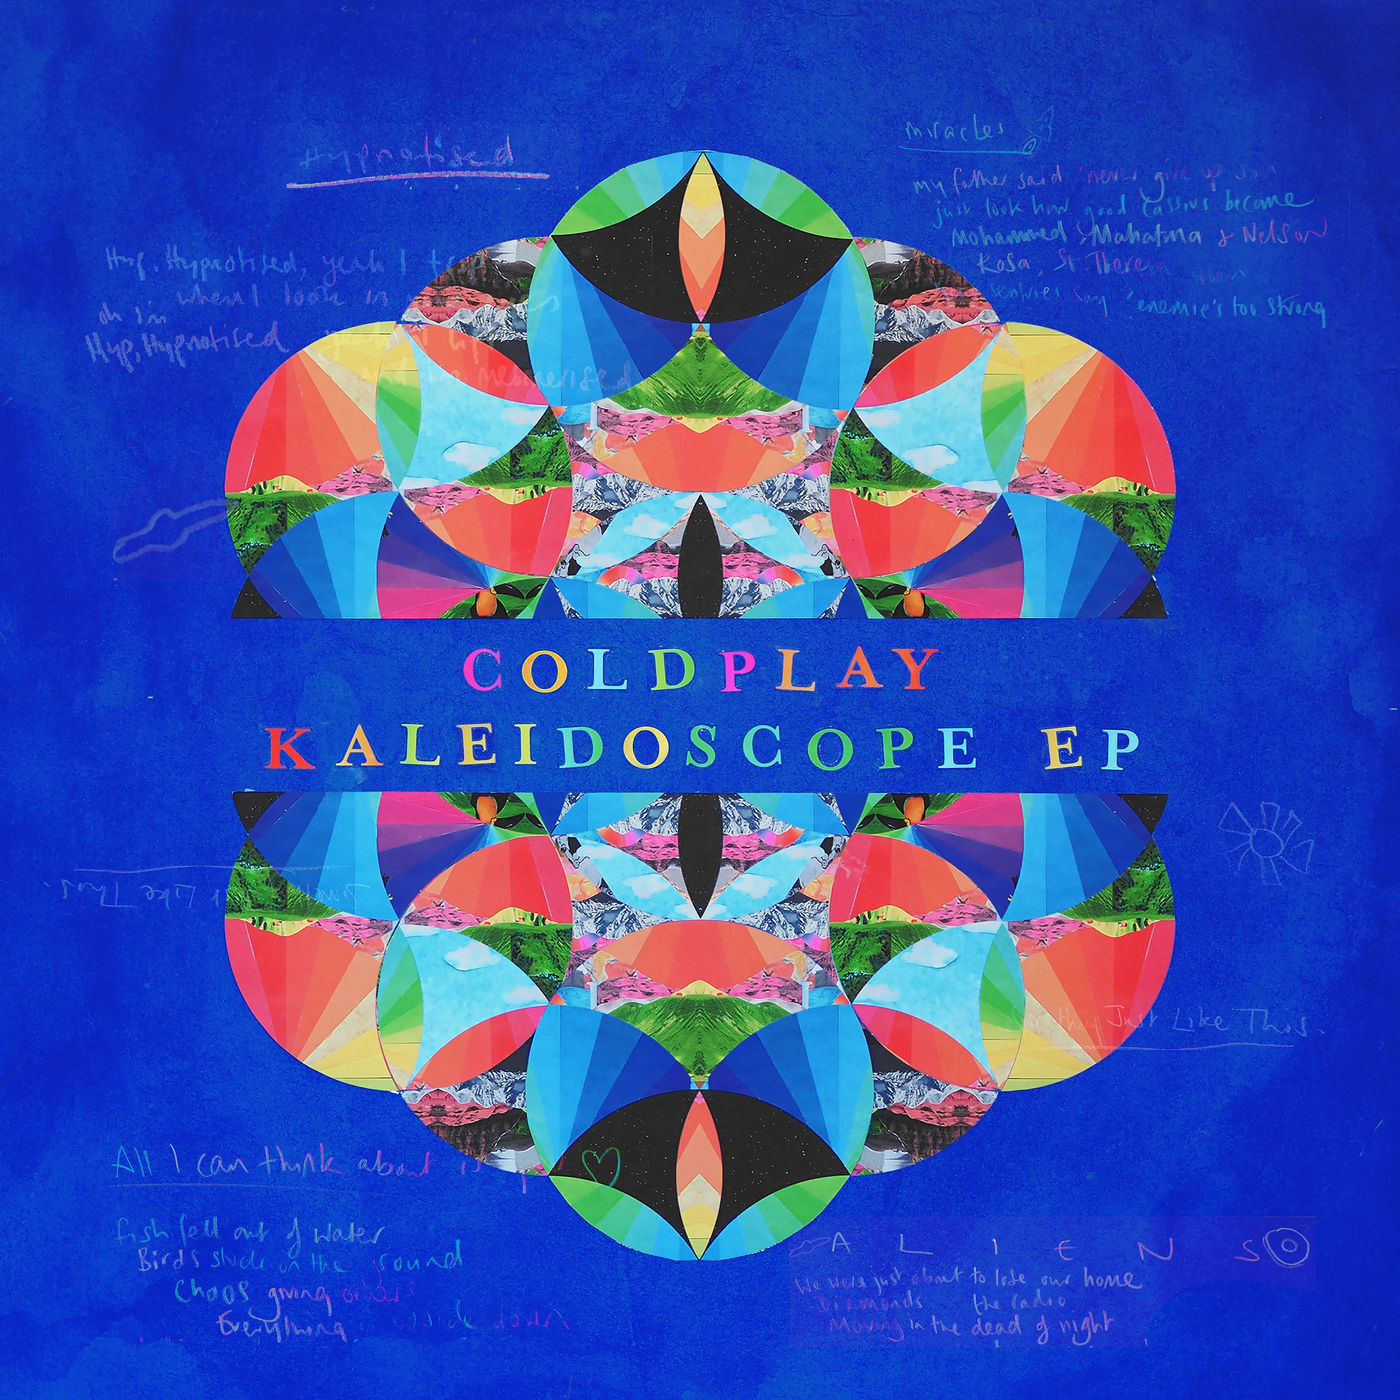 Coldplay releases